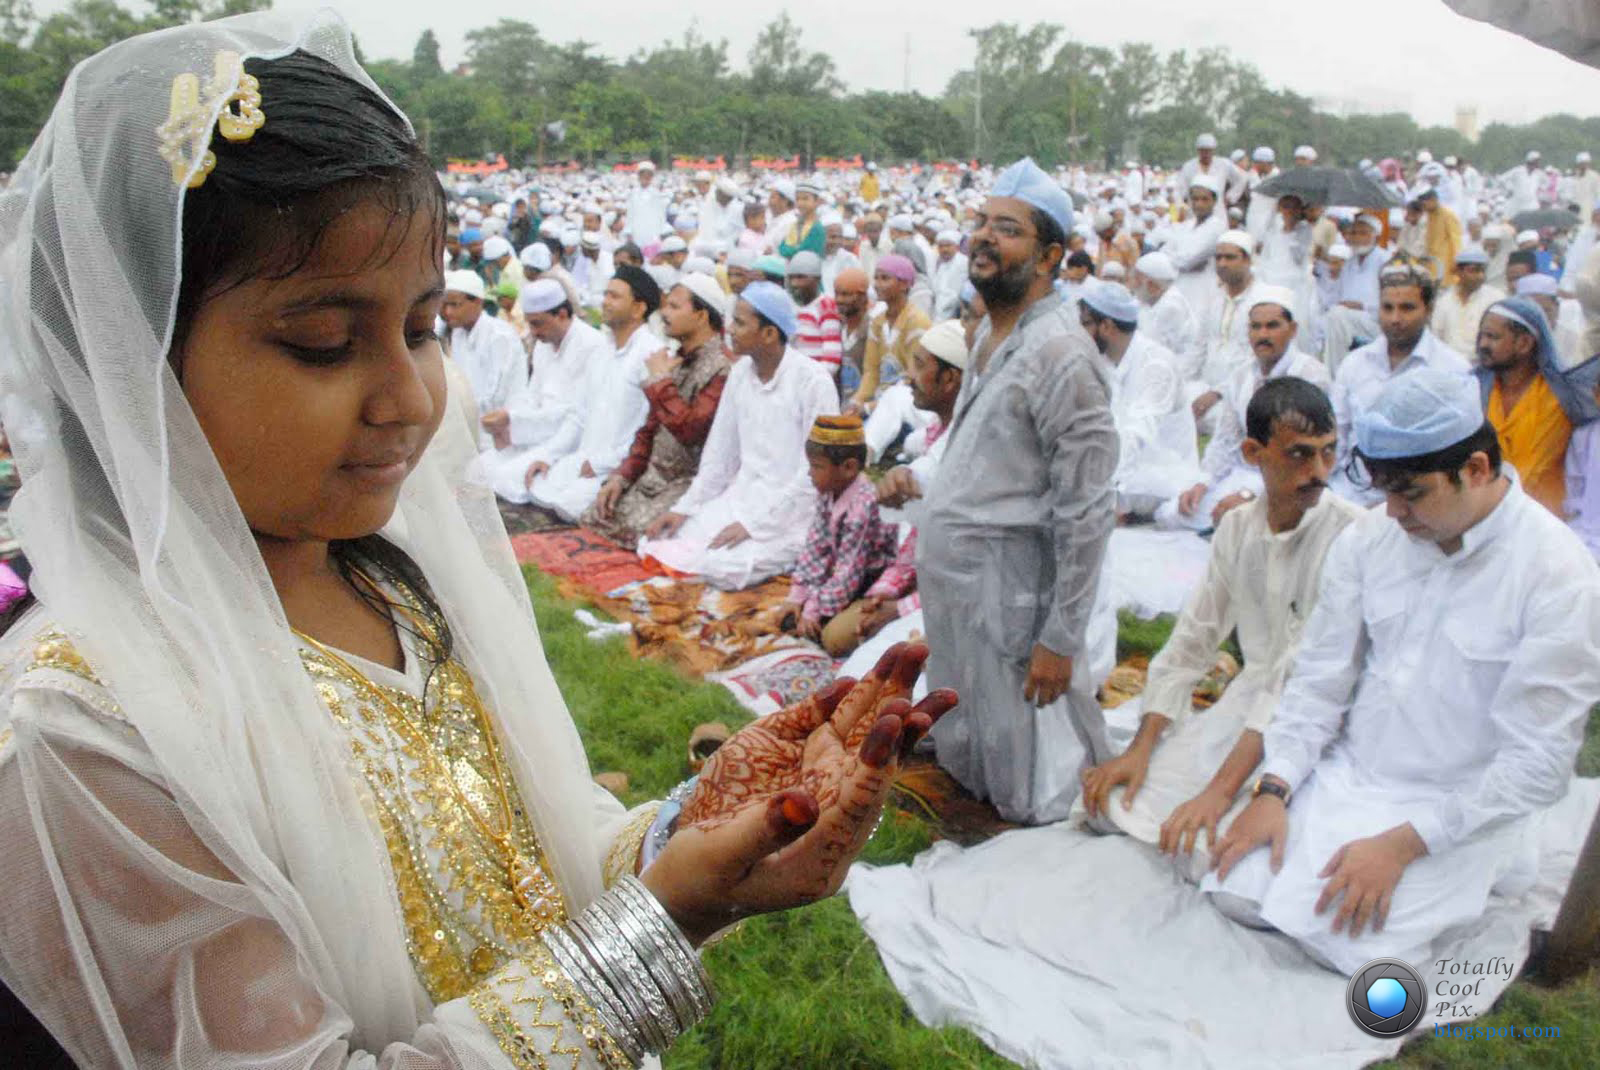 essay on festivals of muslims An essay on bakra eid for kids, students and youth given here short it is the holier of the two festivals of the muslim community who also celebrate eid al-fitr.